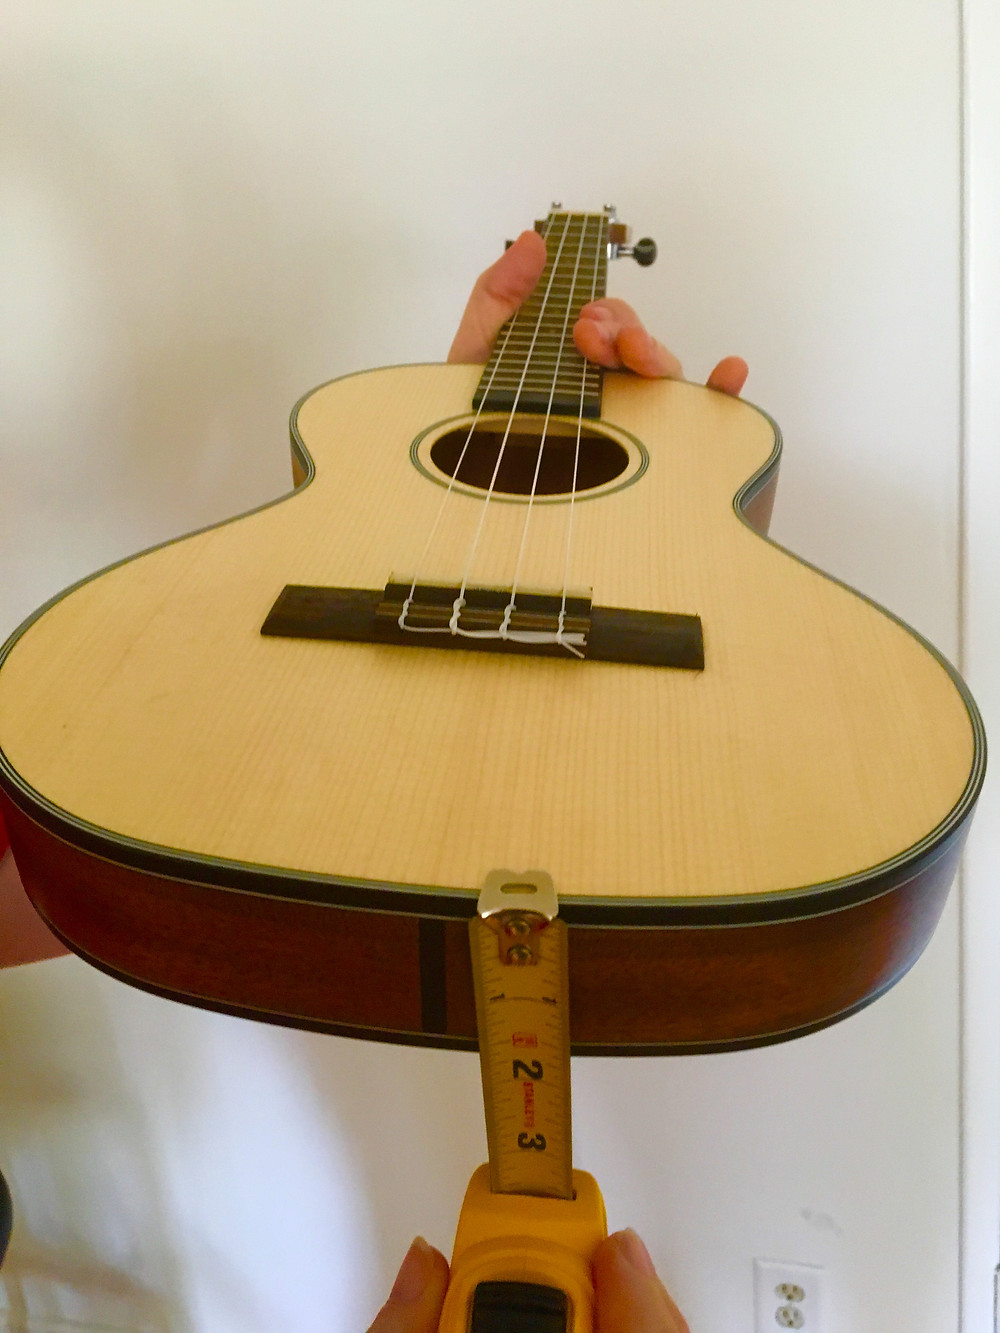 Ultra thin ukulele - only two inches thick!